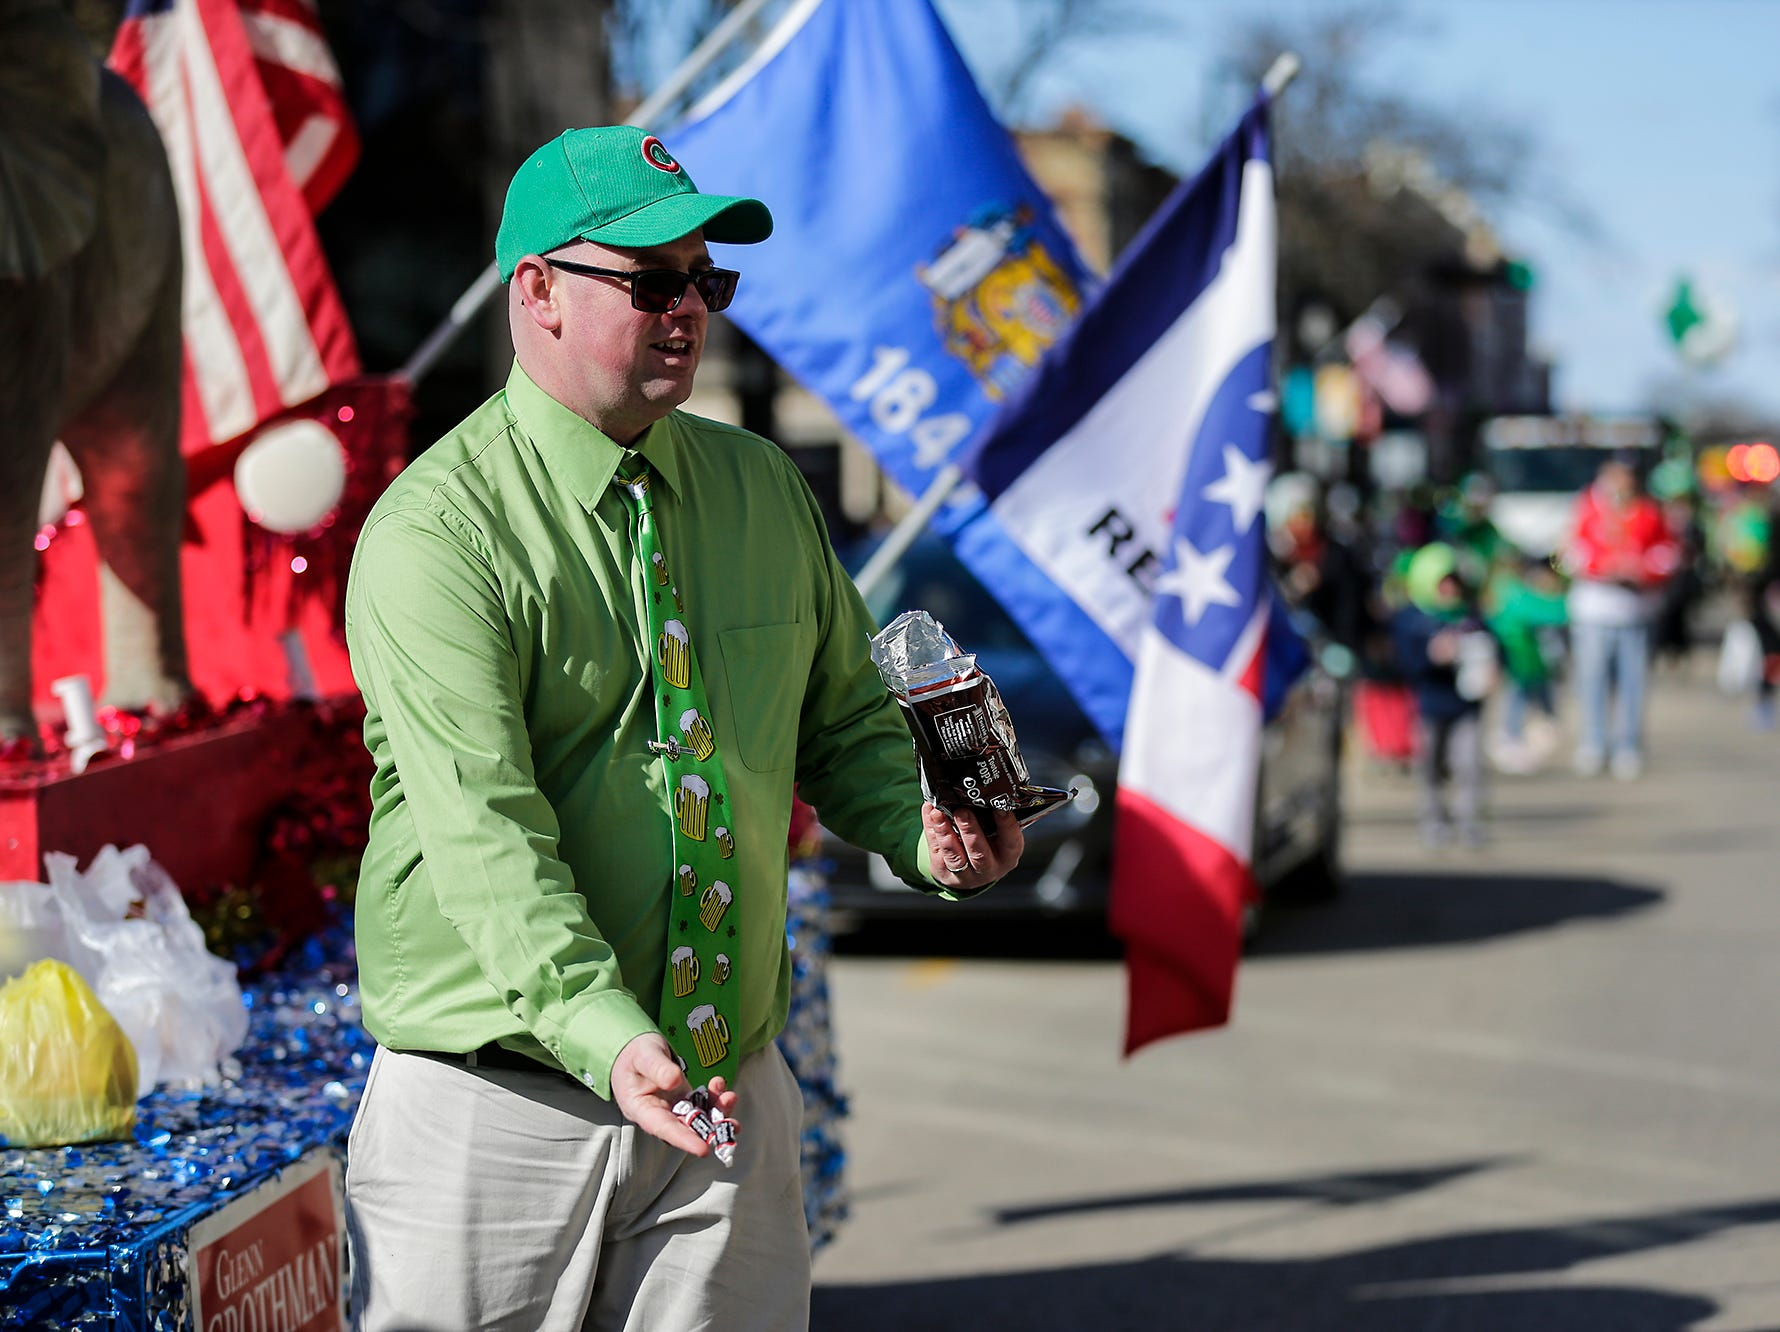 Rohn Bishop of Waupun throws out candy while walking with the Republican Party of Fond du Lac County in the City of Fond du Lac St. Patrick's Day Parade Saturday, March 16, 2019 on Main Street in downtown Fond du Lac. Hundreds of people lined the street to watch over 50 parade participants. Doug Raflik/USA TODAY NETWORK-Wisconsin